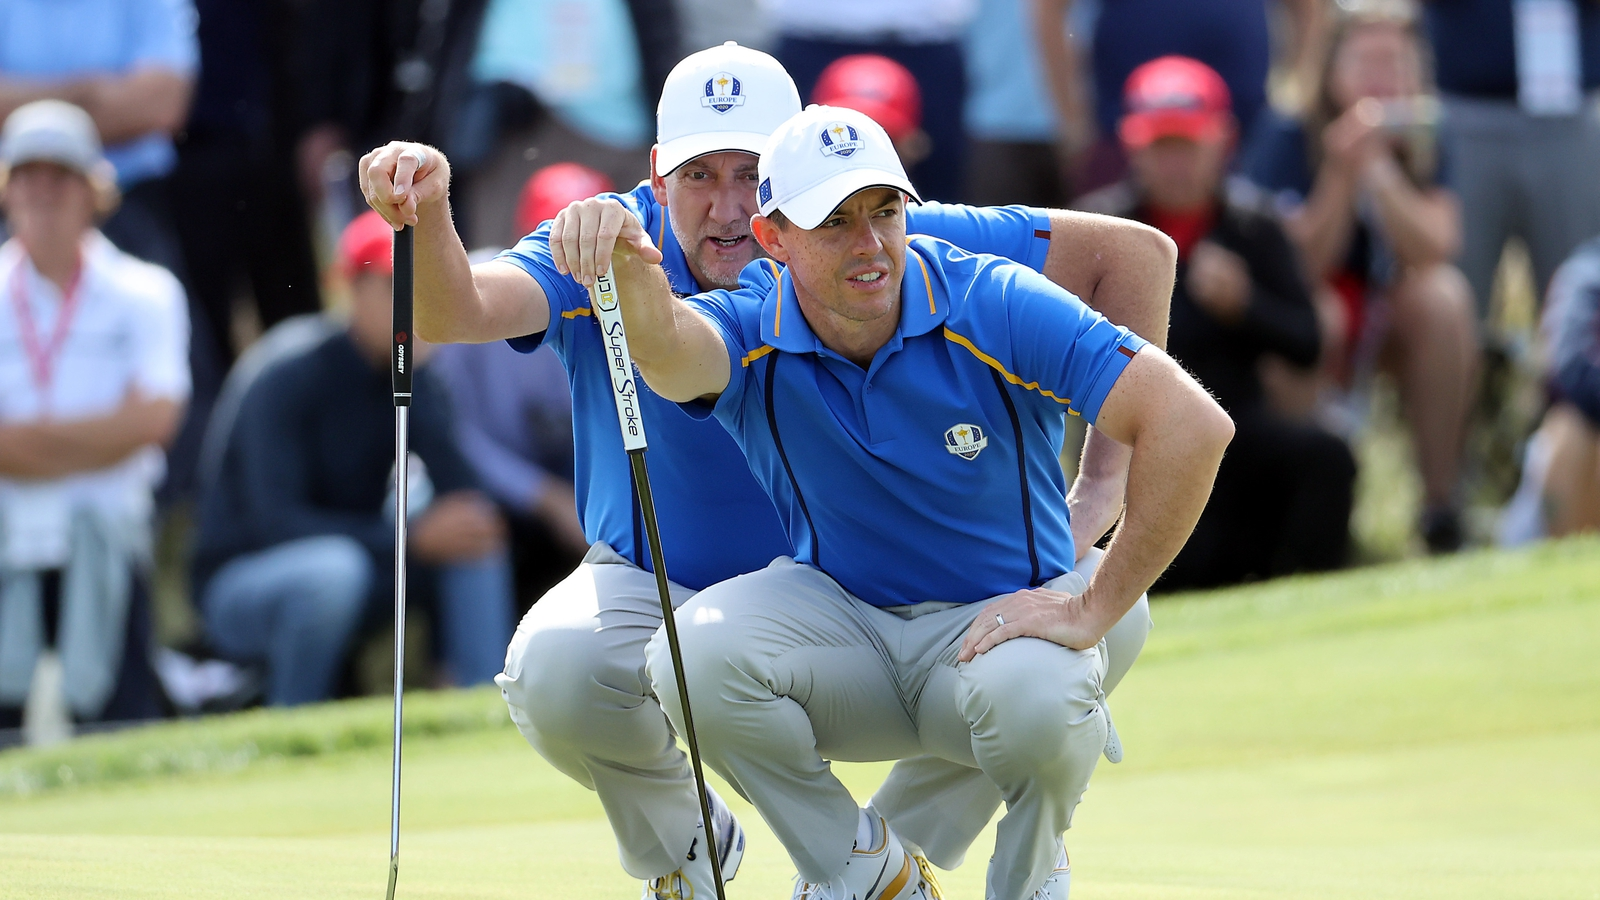 Harrington teams McIlroy and Poulter again in fourballs - RTE.ie